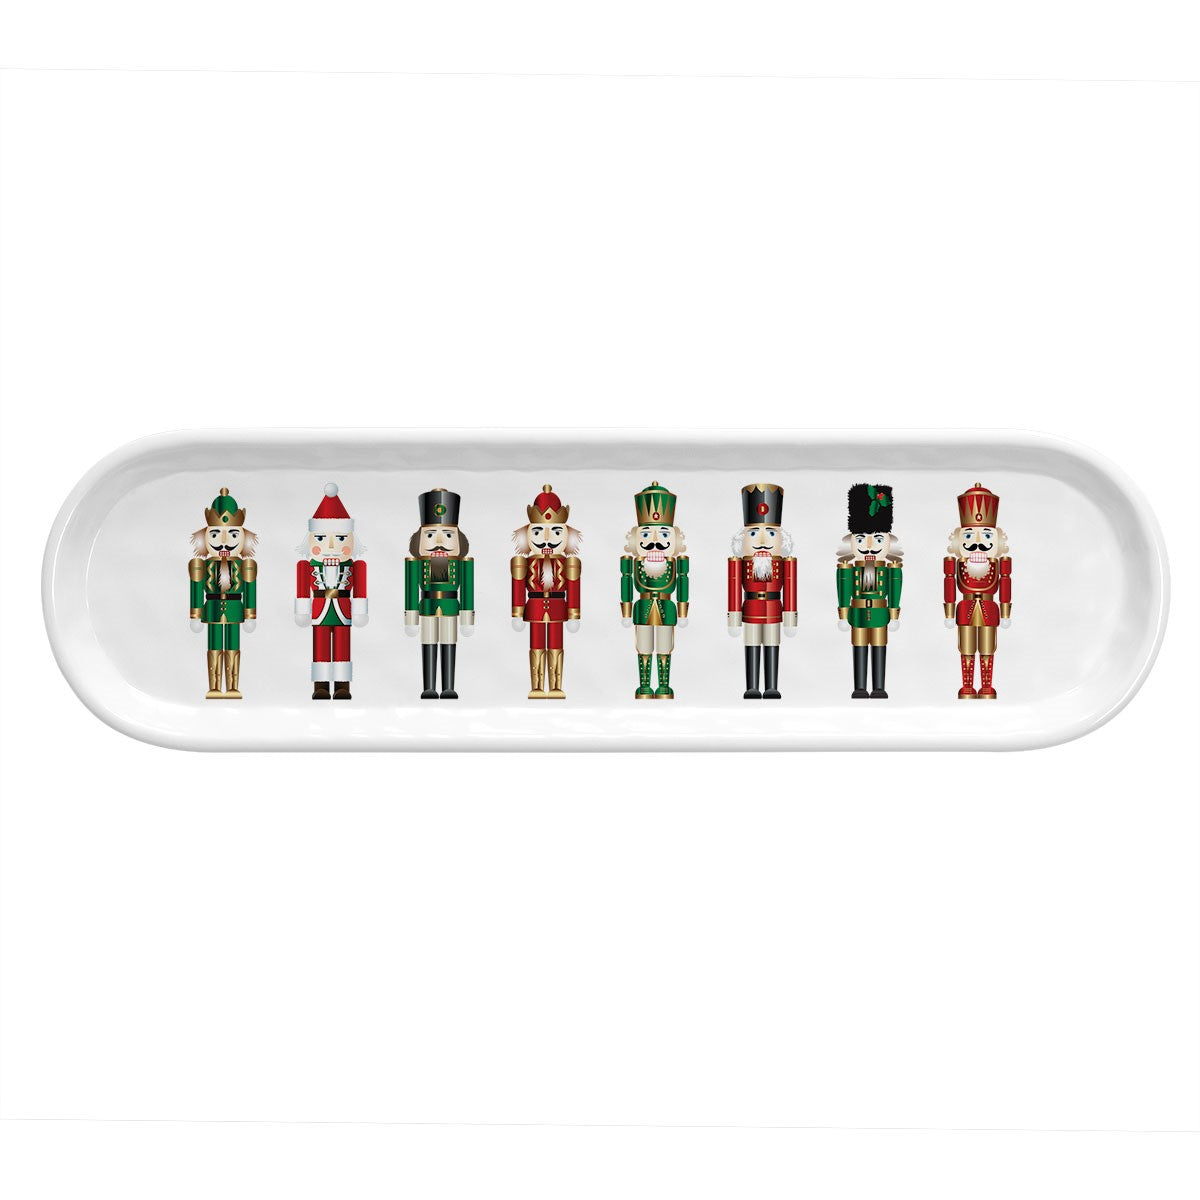 Nutcracker Serveware Hostess Set with Foaming Hand Soap